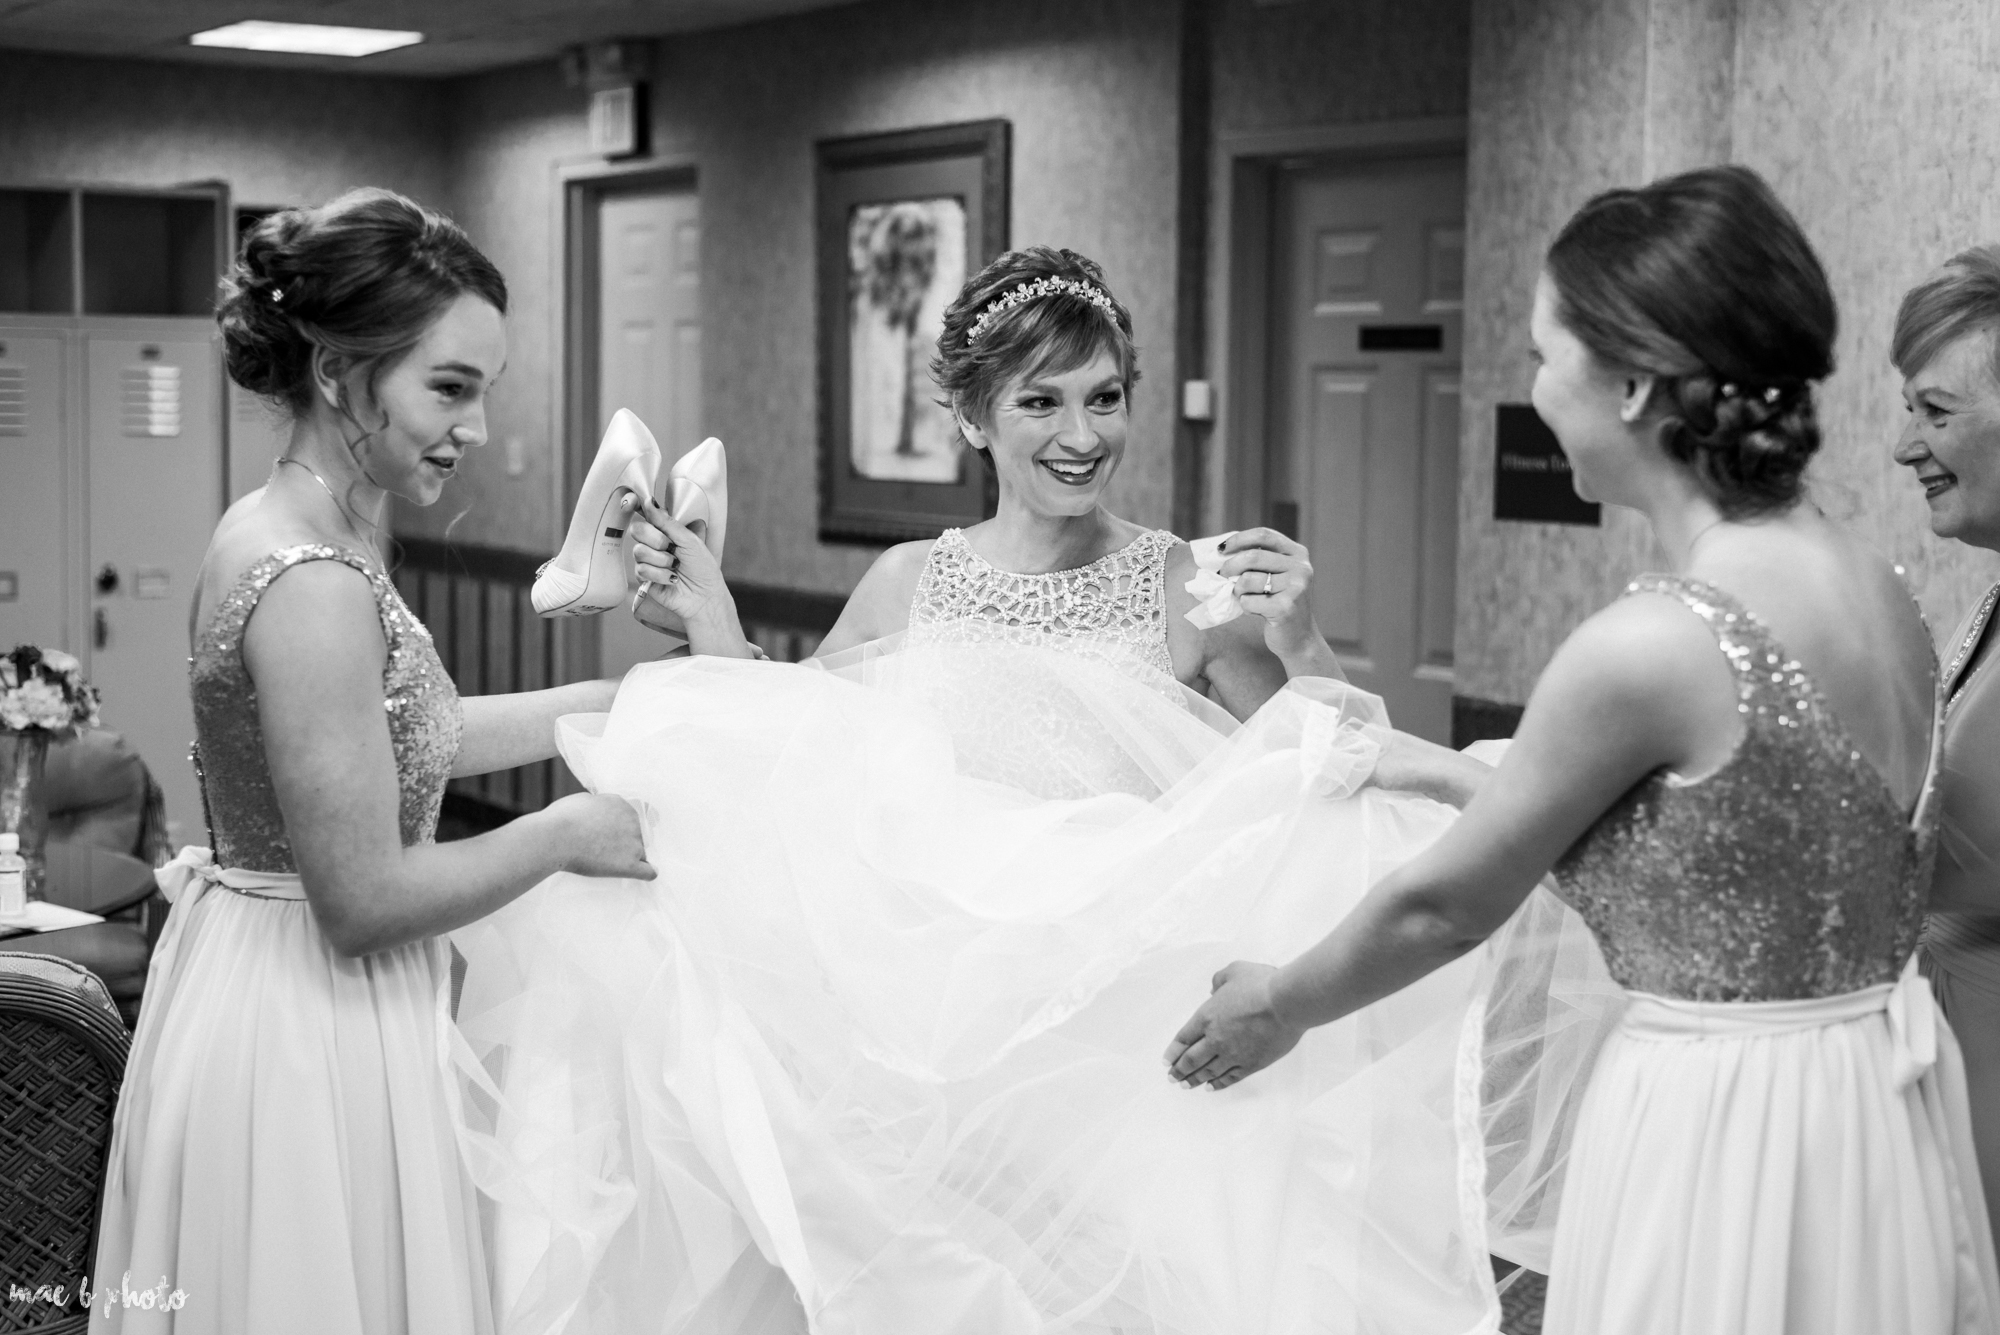 Mary Catherine & Chad's Elegant and Intimate Country Club Wedding at Squaw Creek in Youngstown Ohio by Mae B Photo-39.jpg